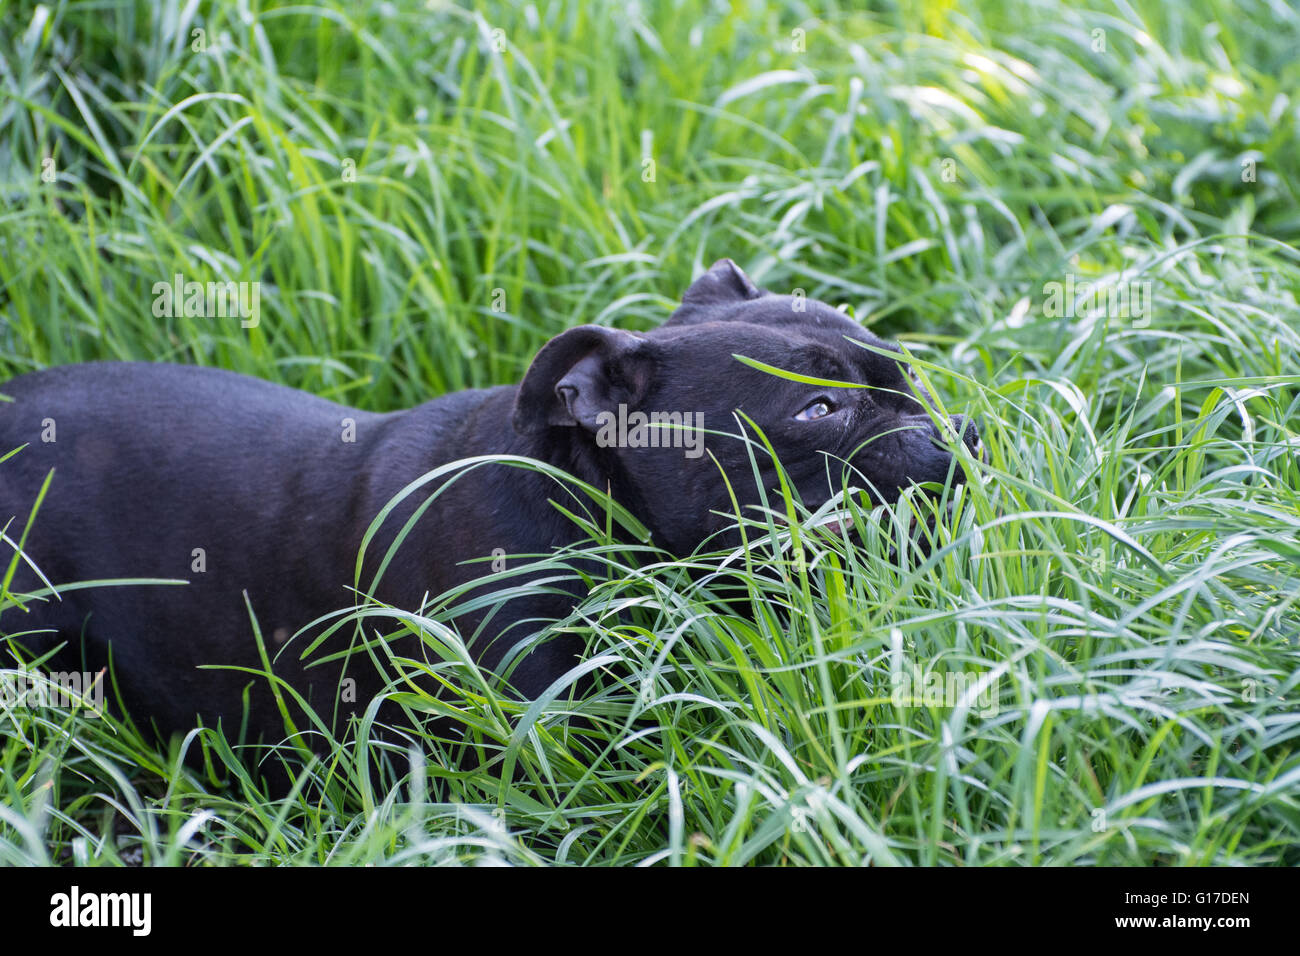 A Staffordshire Bull Terrier laying in the grass. - Stock Image